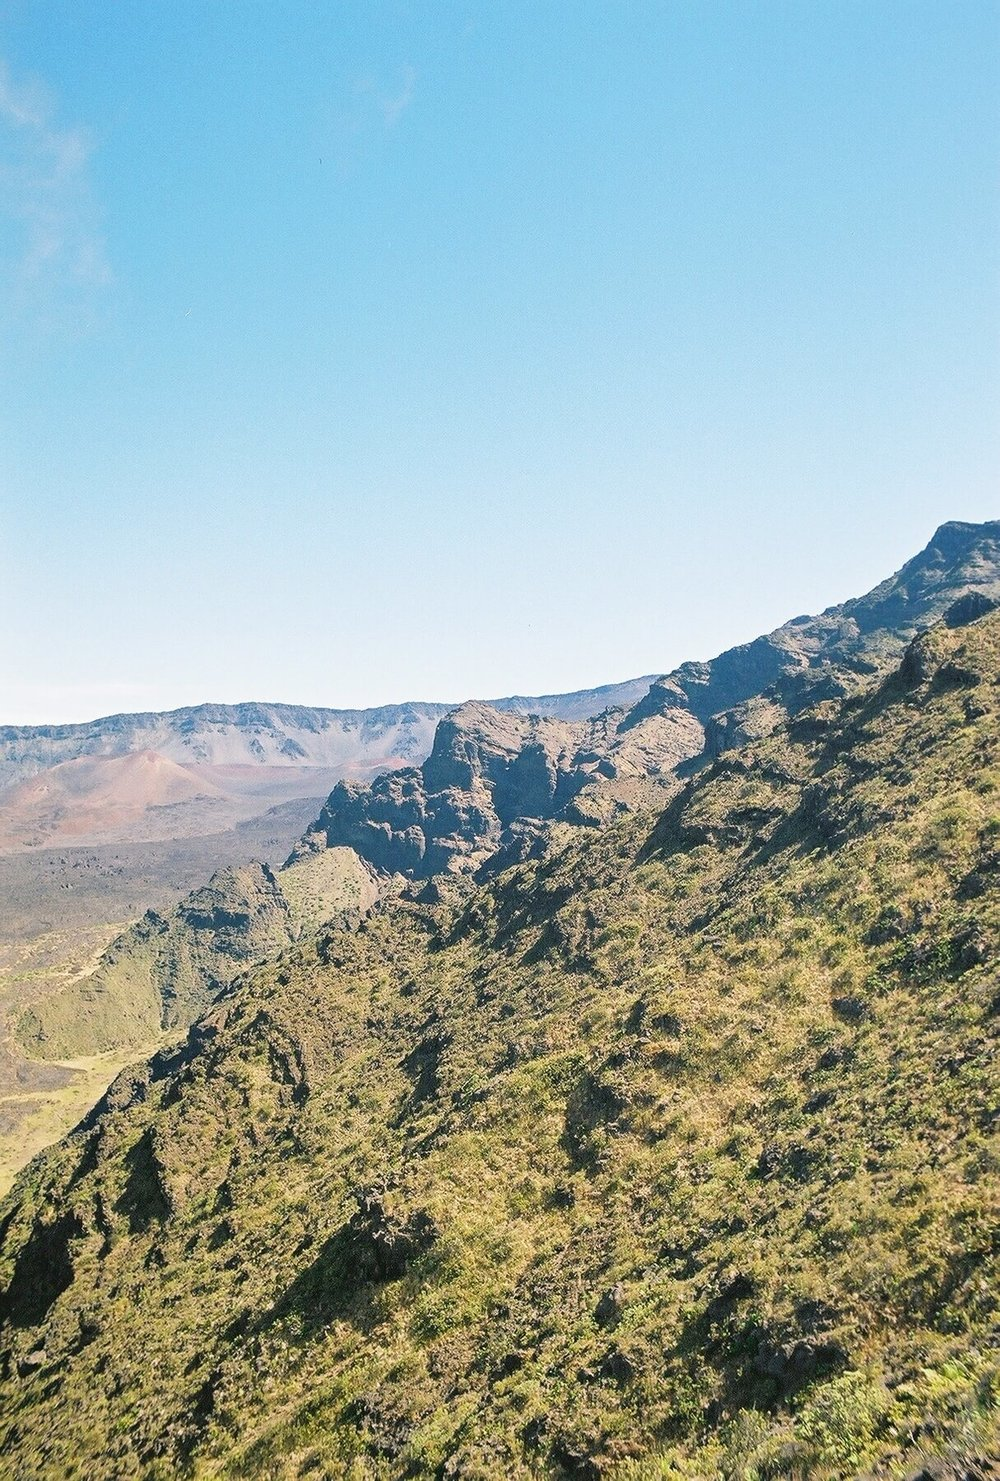 Discover the 10 best things to do in Maui with these insider tips from an ex-resident. #maui #travel #hawaii Haleakala National Park by Ryan Hines